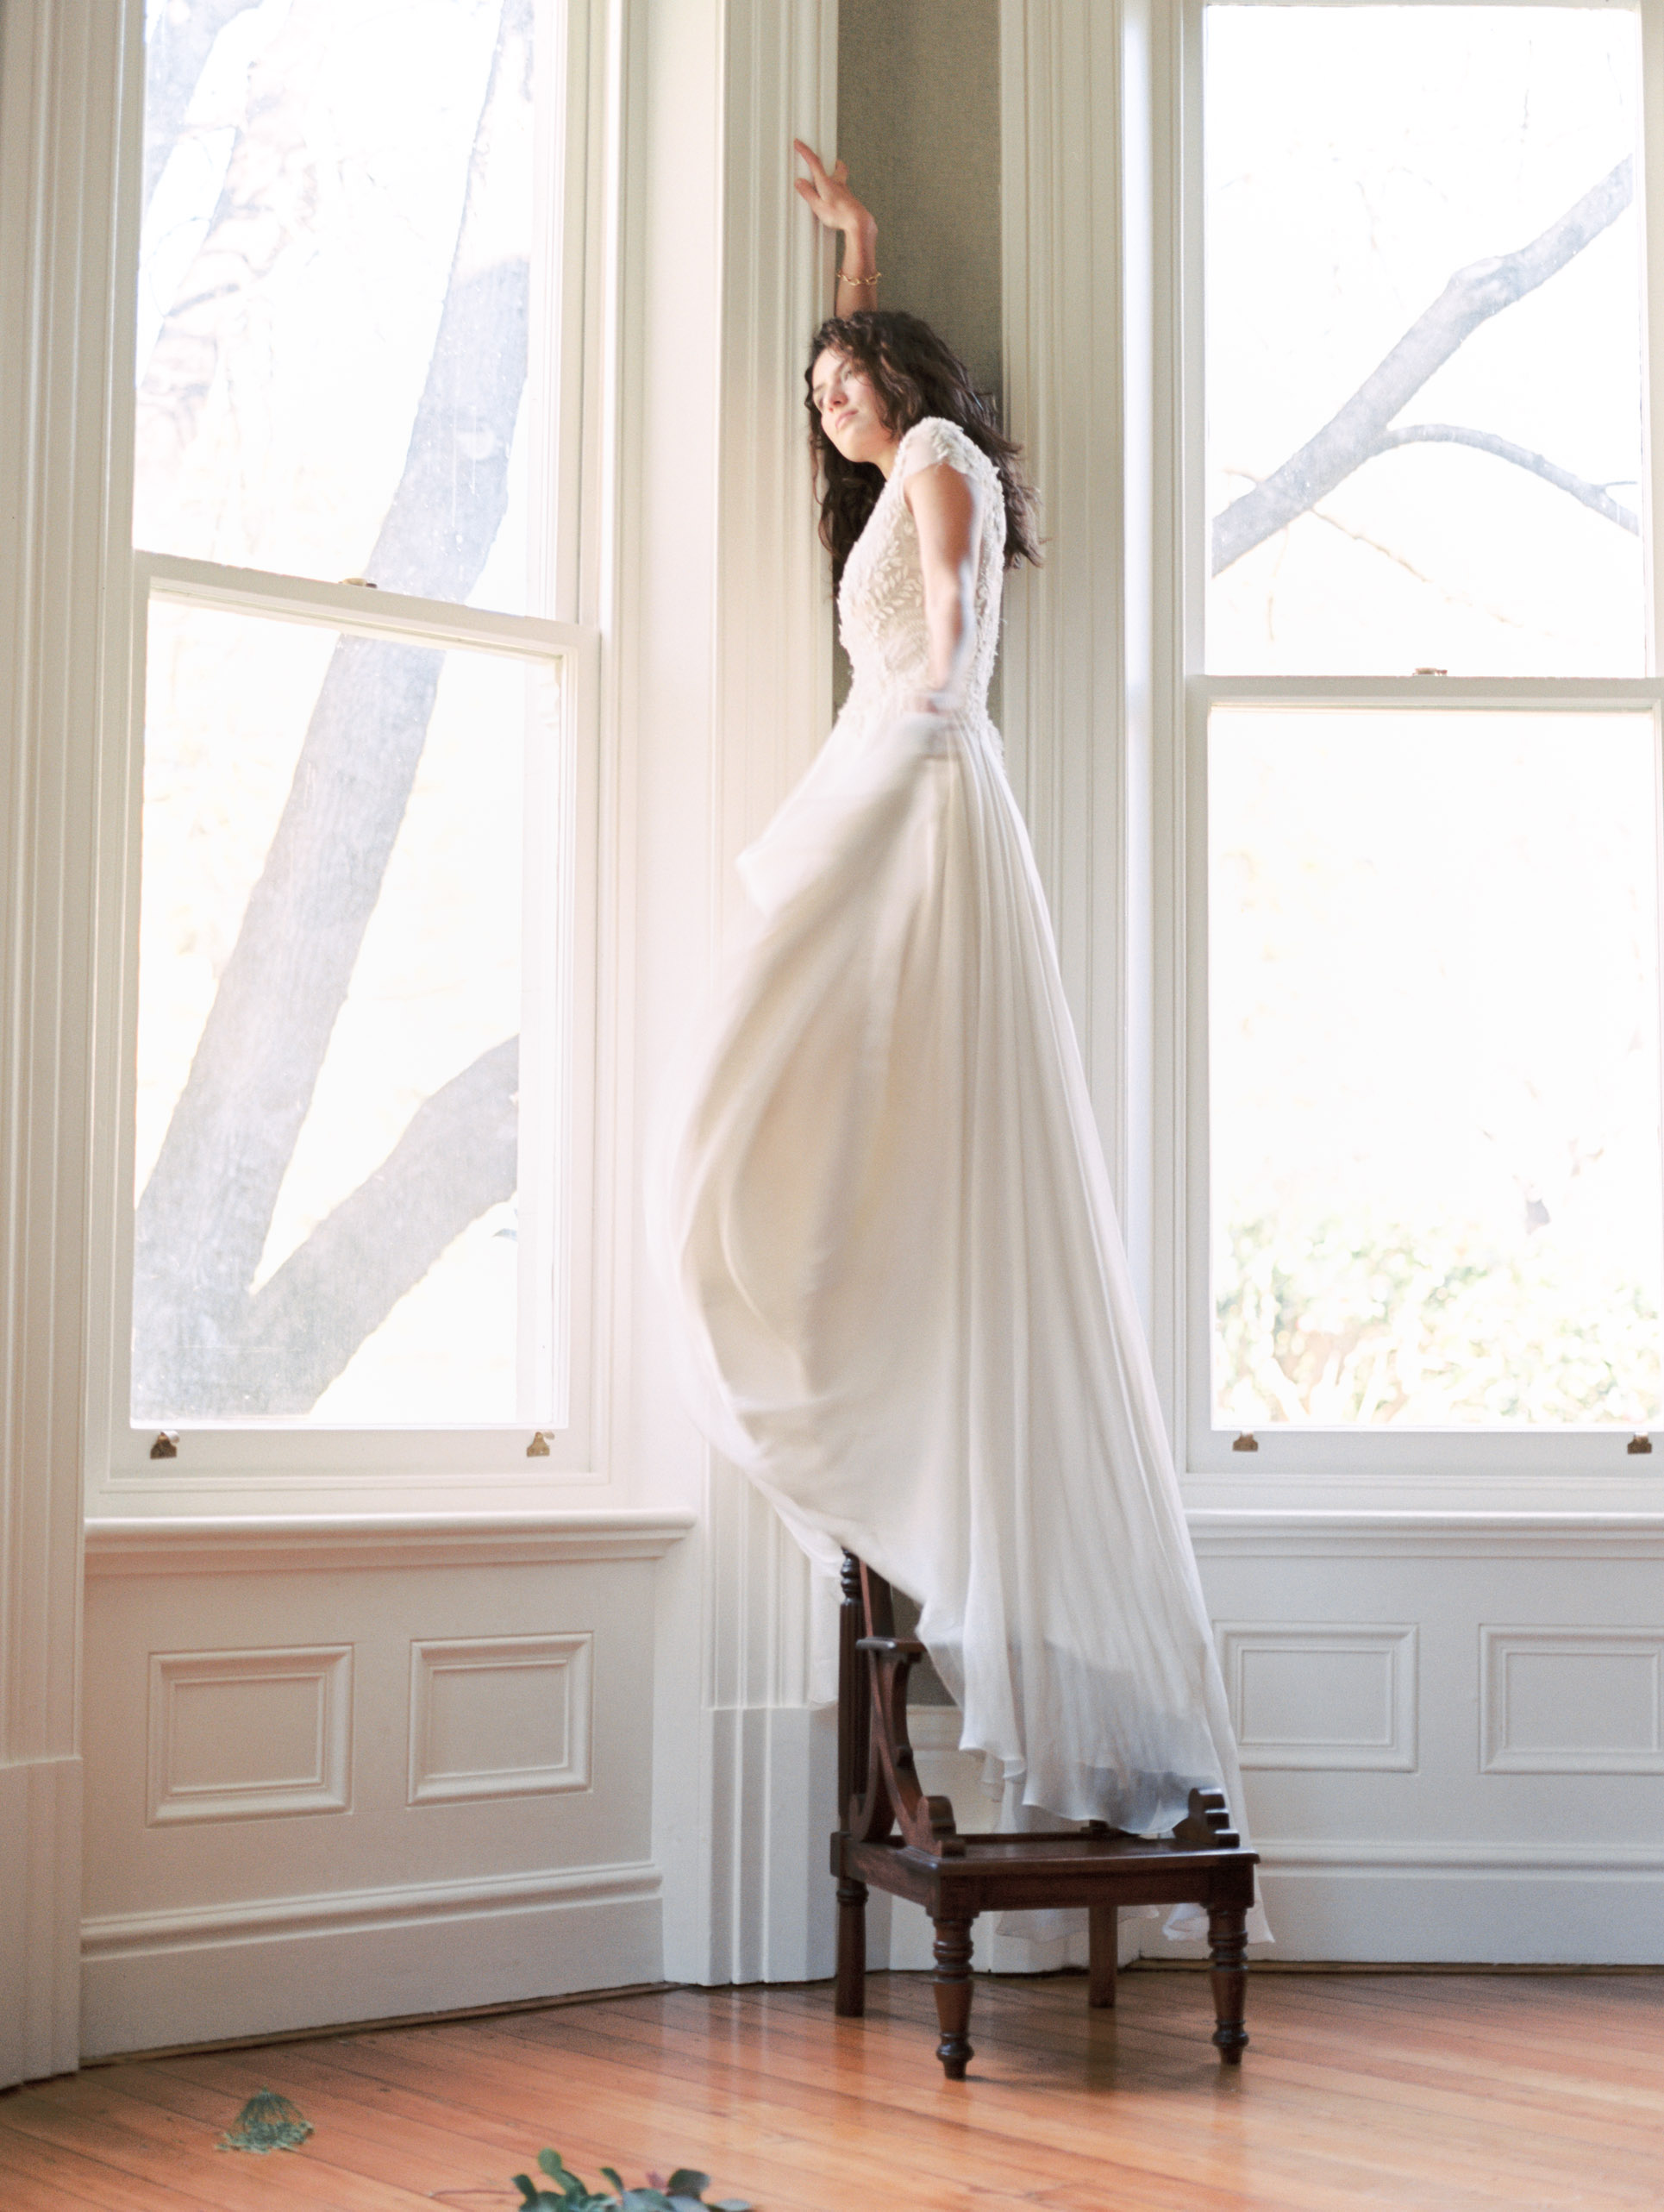 Willow bridal gown Tanya Anic Lilli Kad Photography Hopewood.jpg